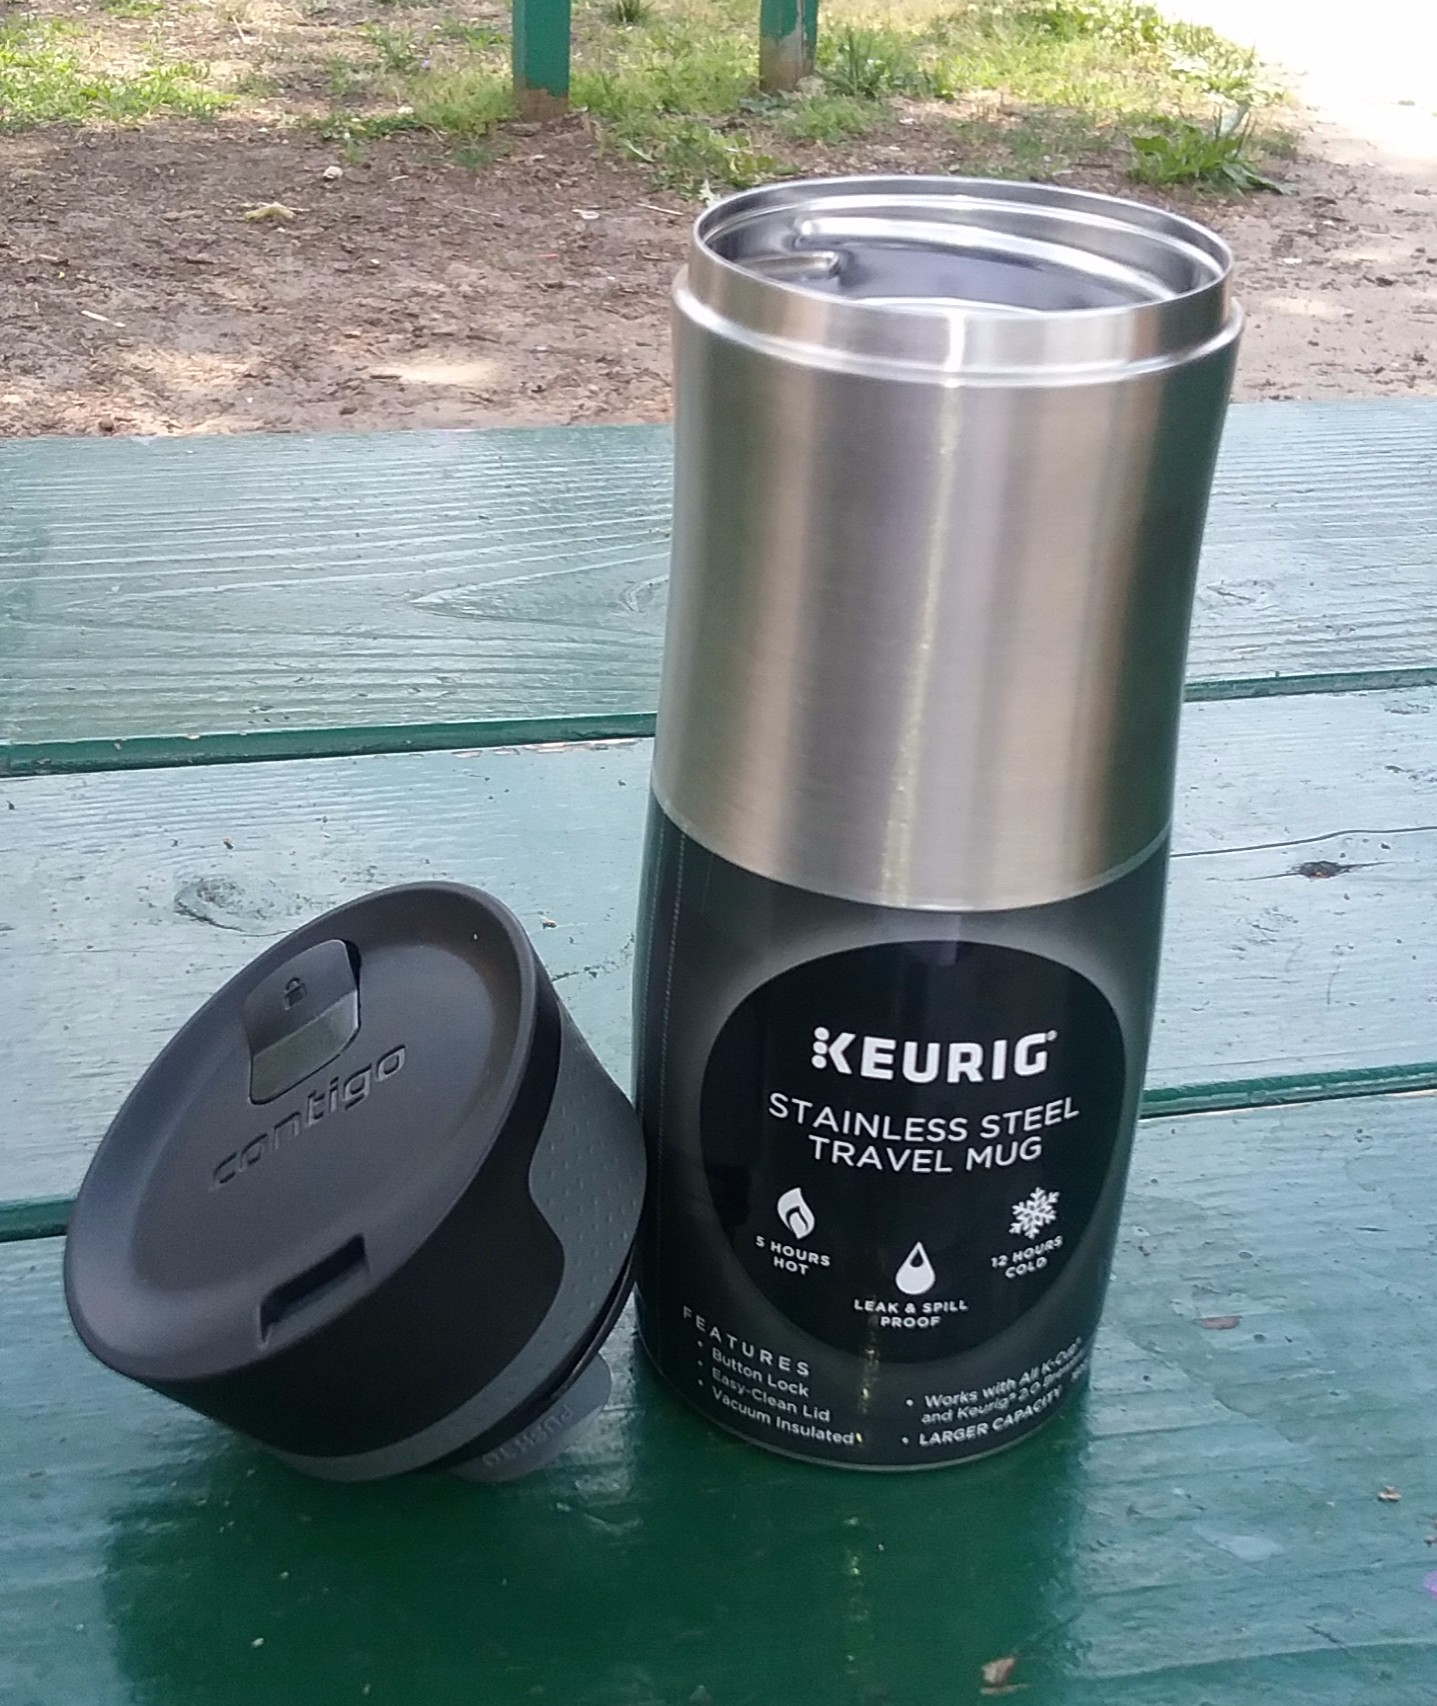 Keurig Contigo Travel Mug Review